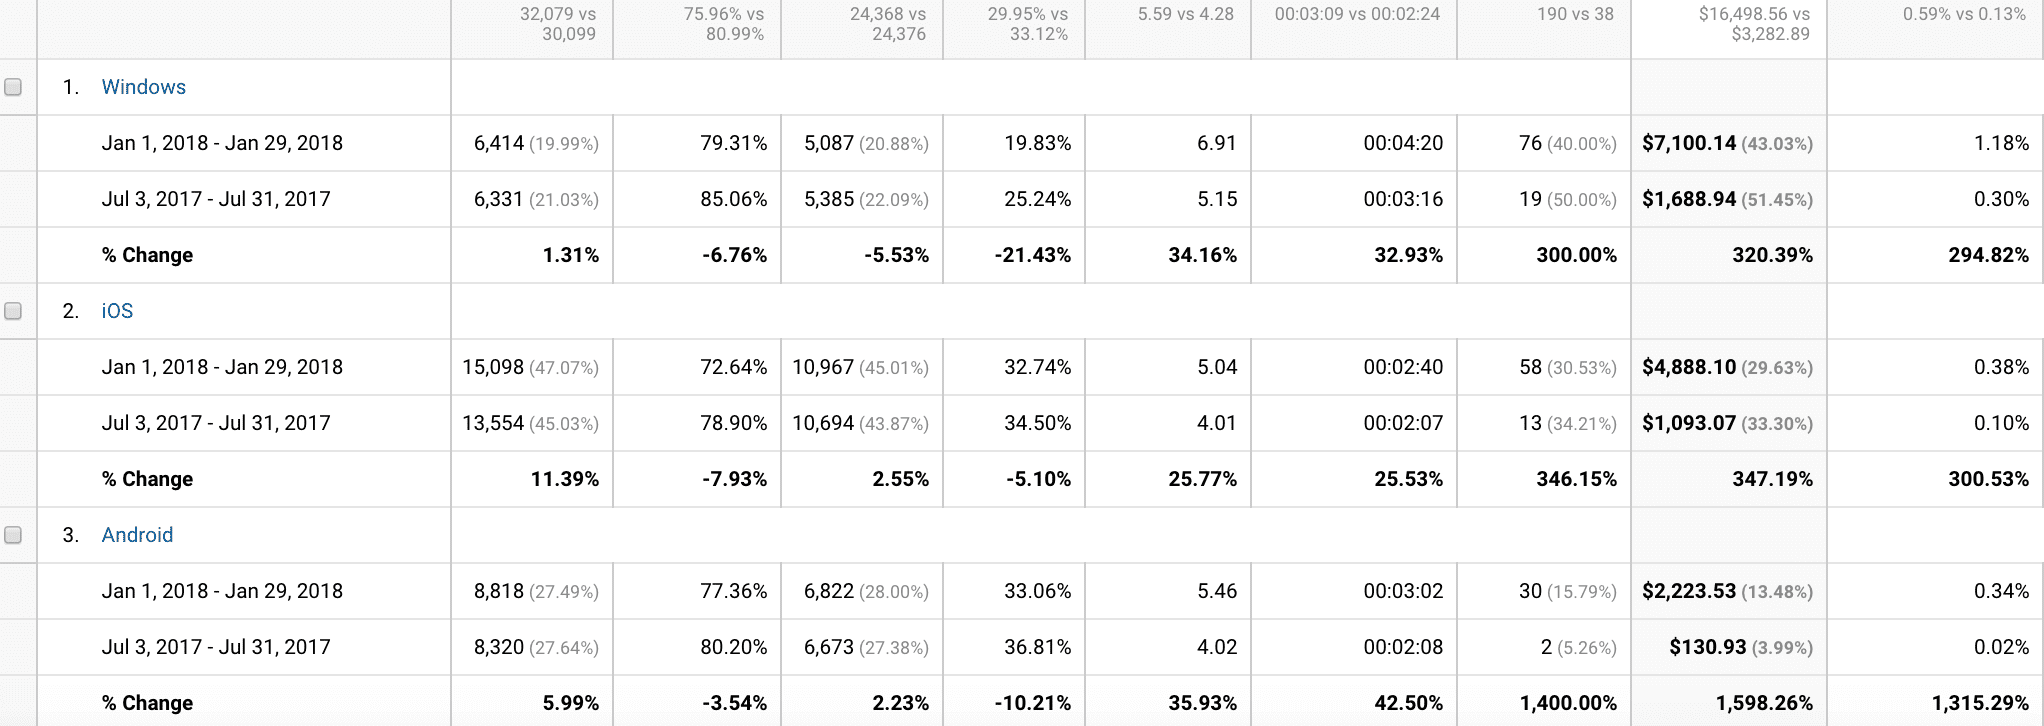 comparing visitor and sales data by browser type from July 2017 to January 2018